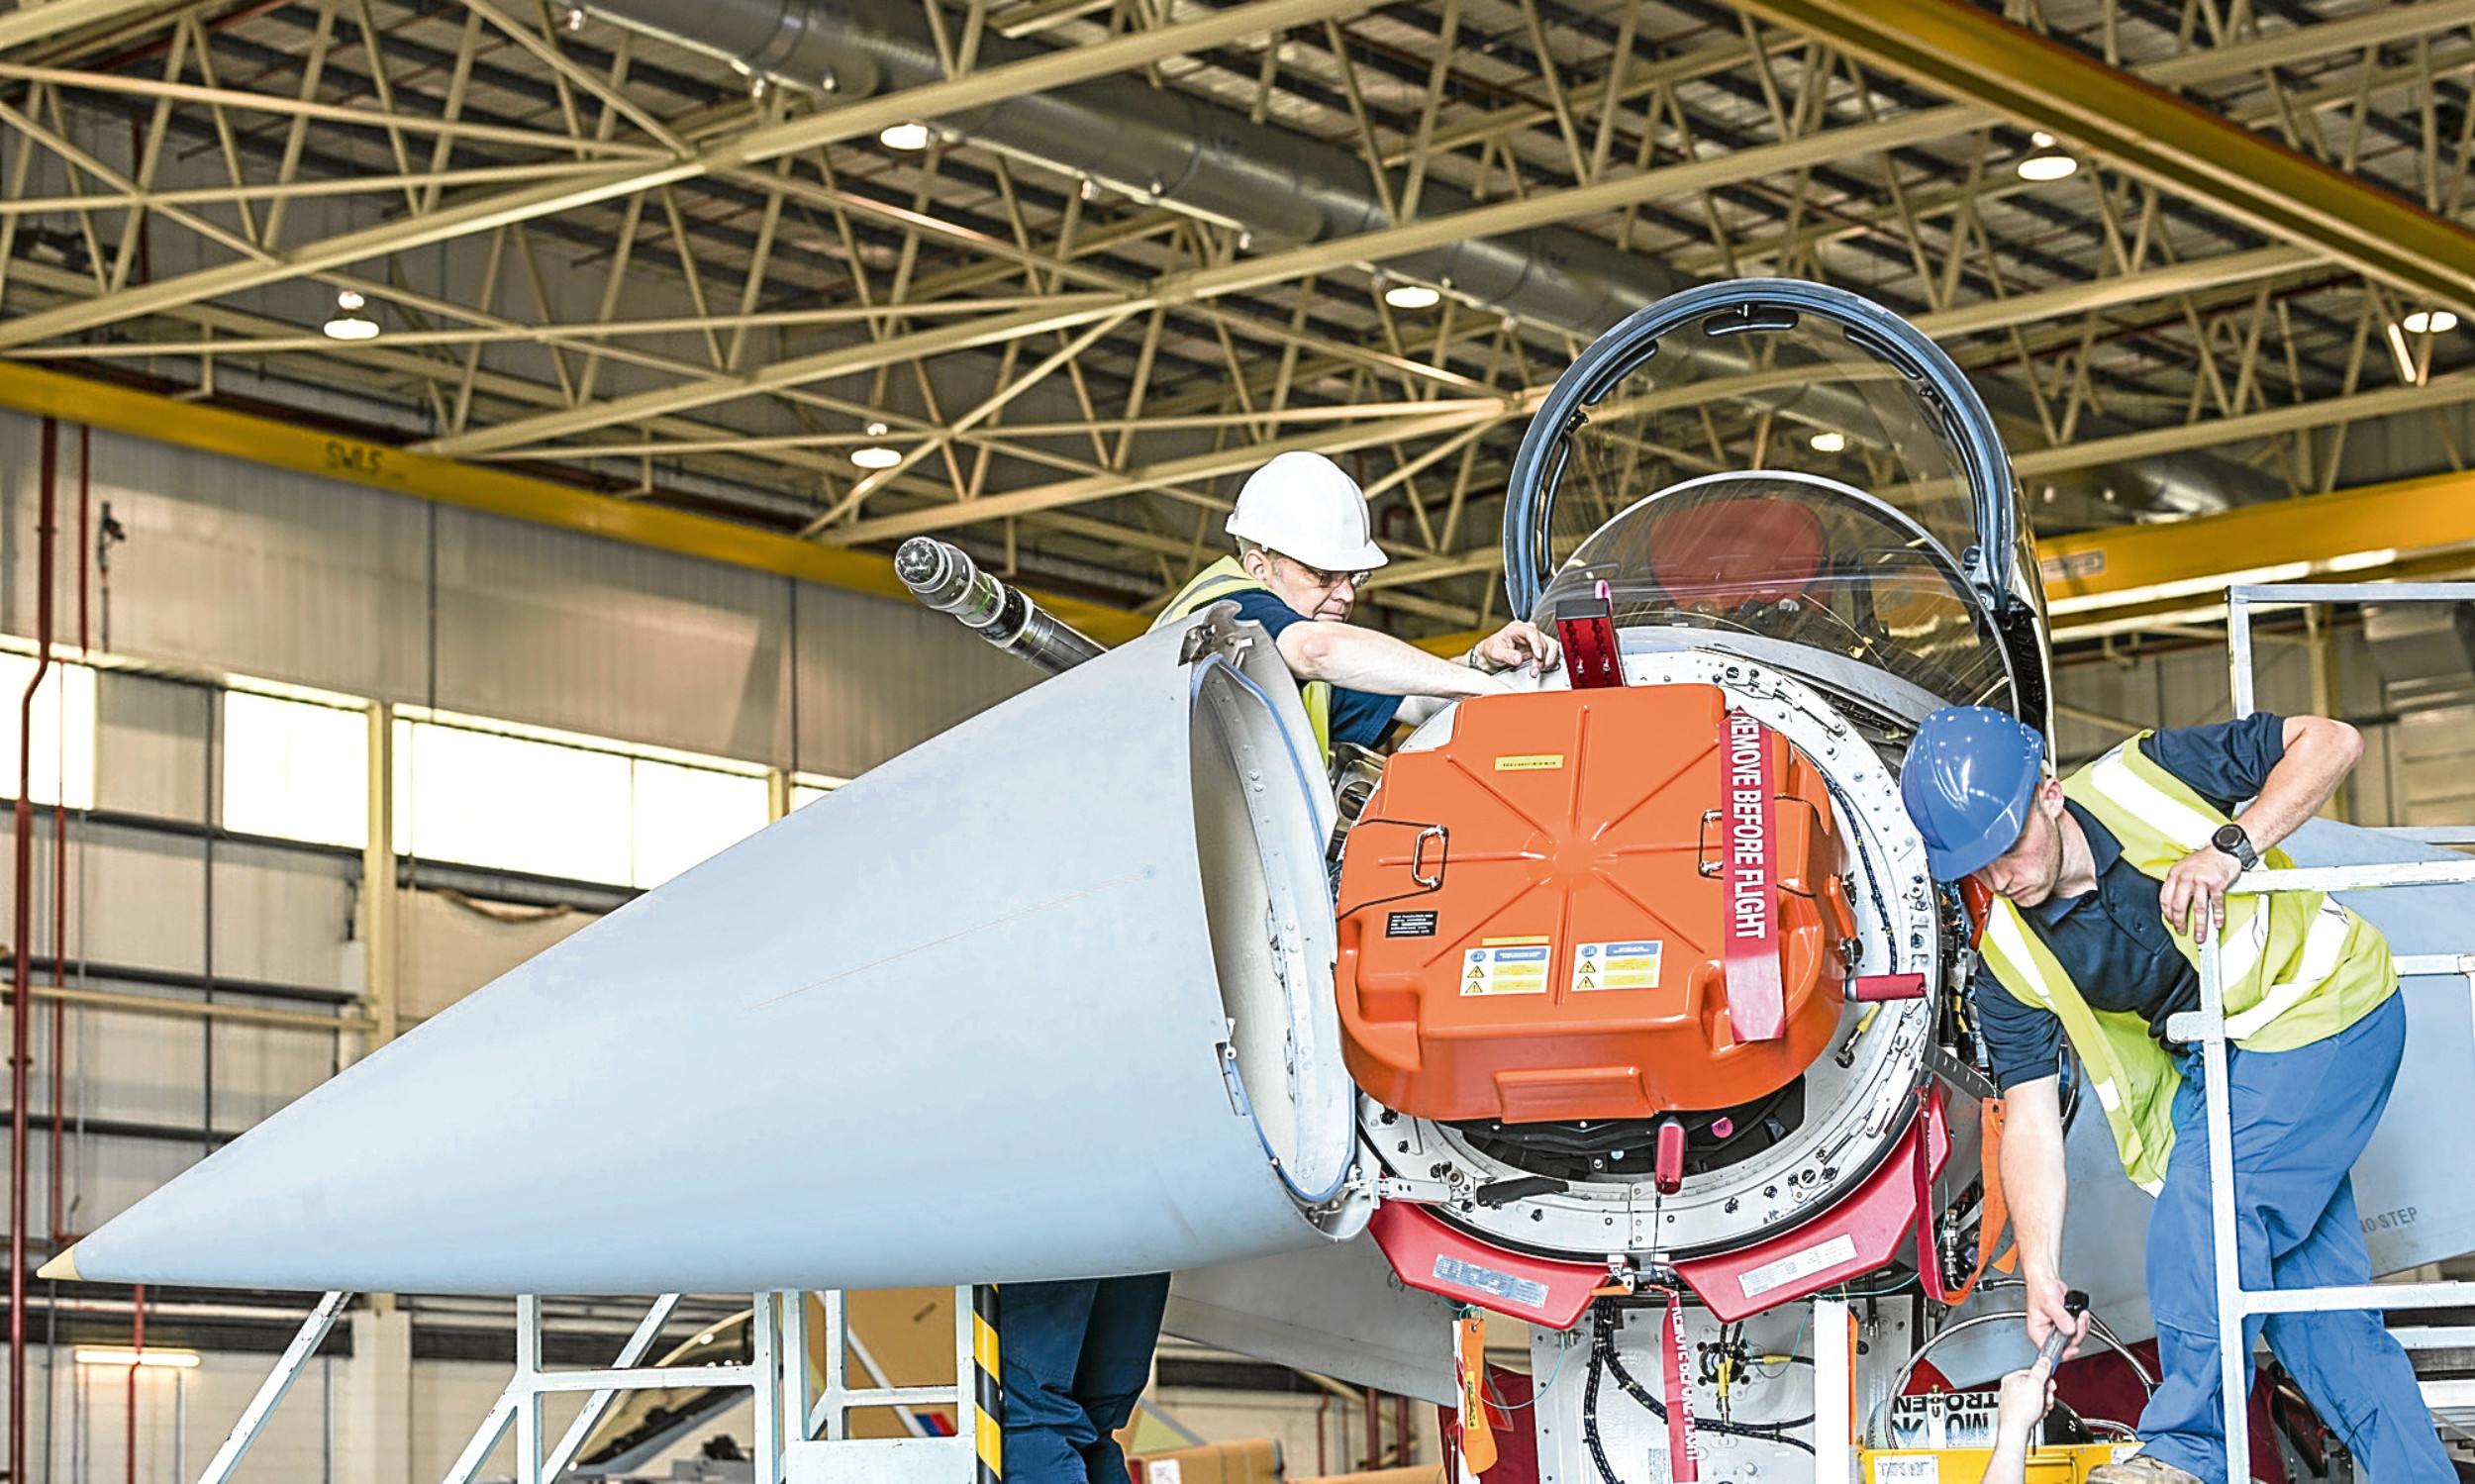 BAE Systems engineers for an E-Scan radar system to a Typhoon jet